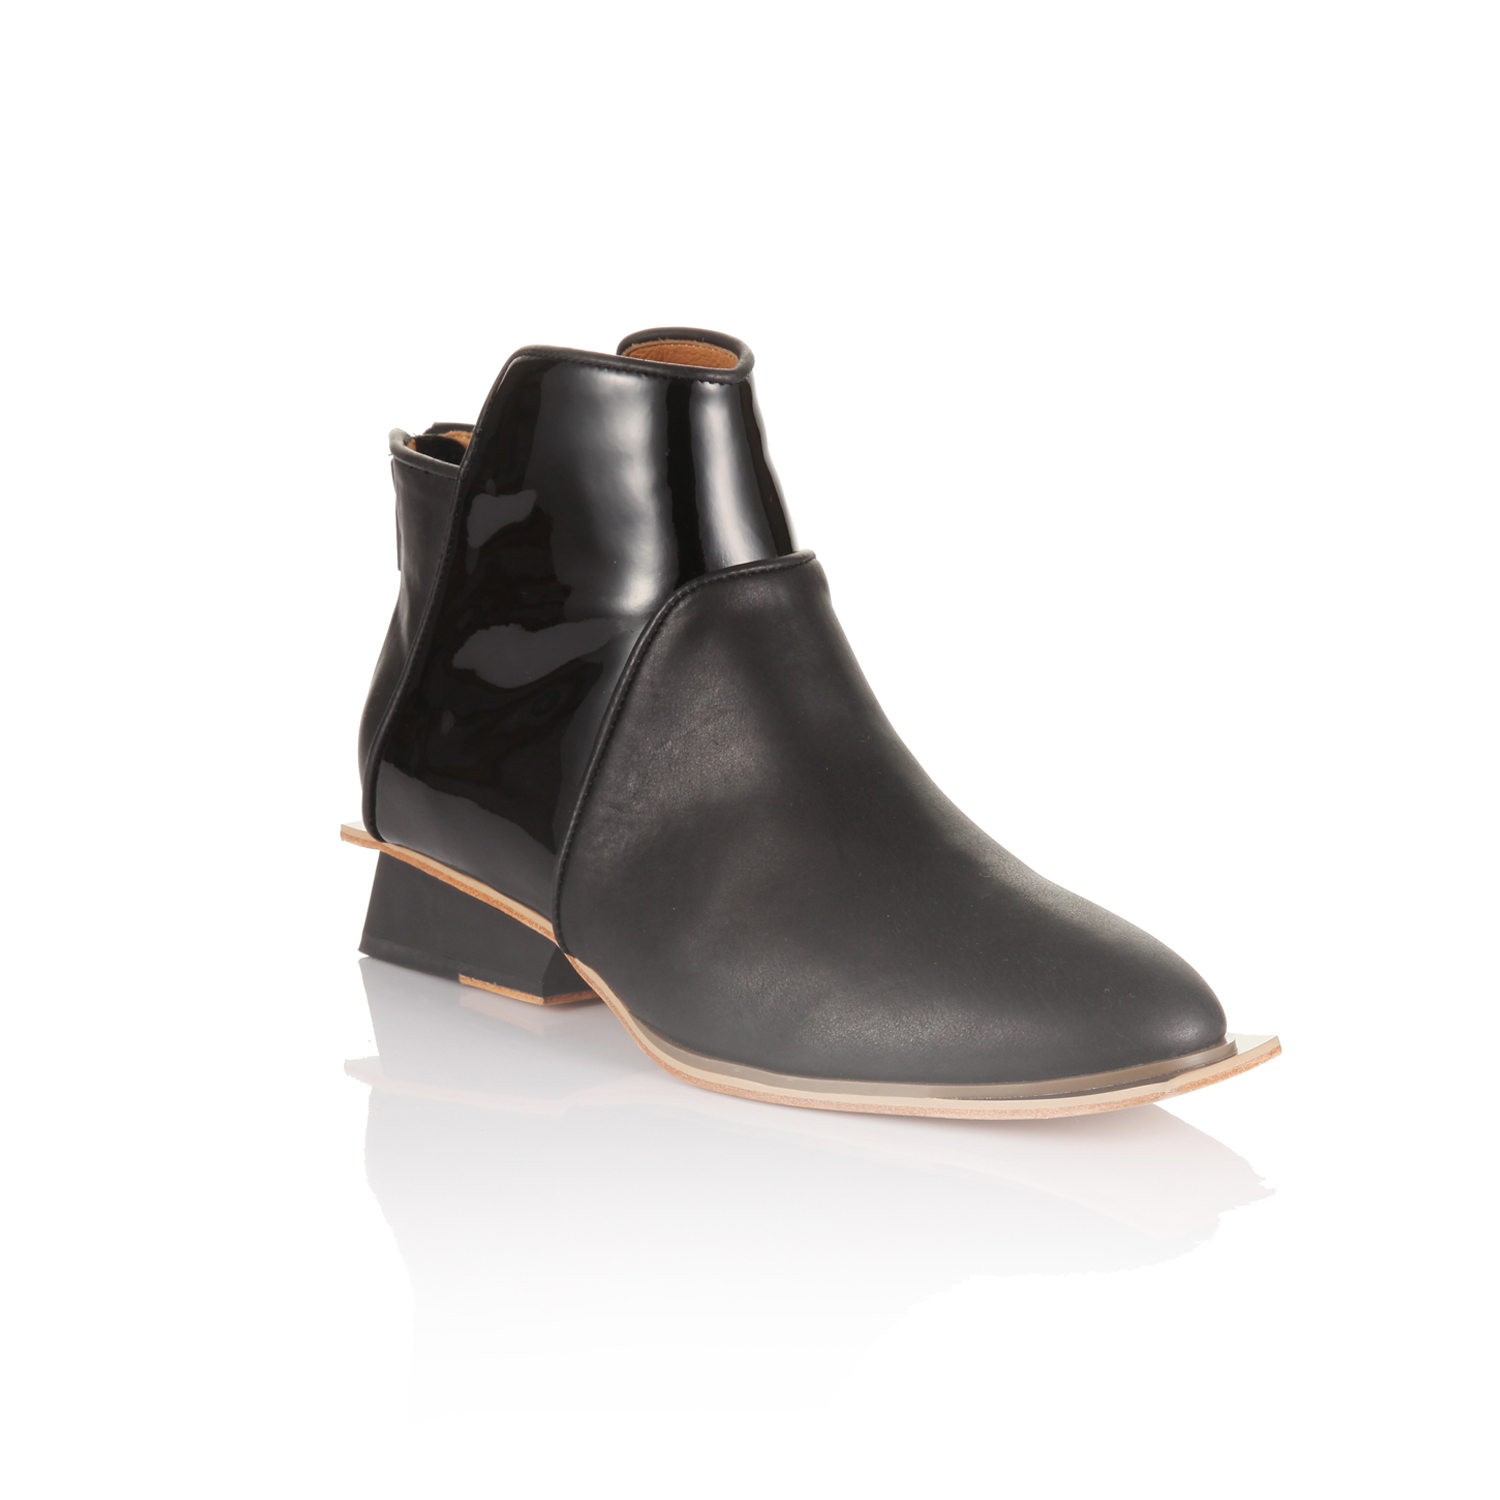 Abcense Chasse Boot in Black